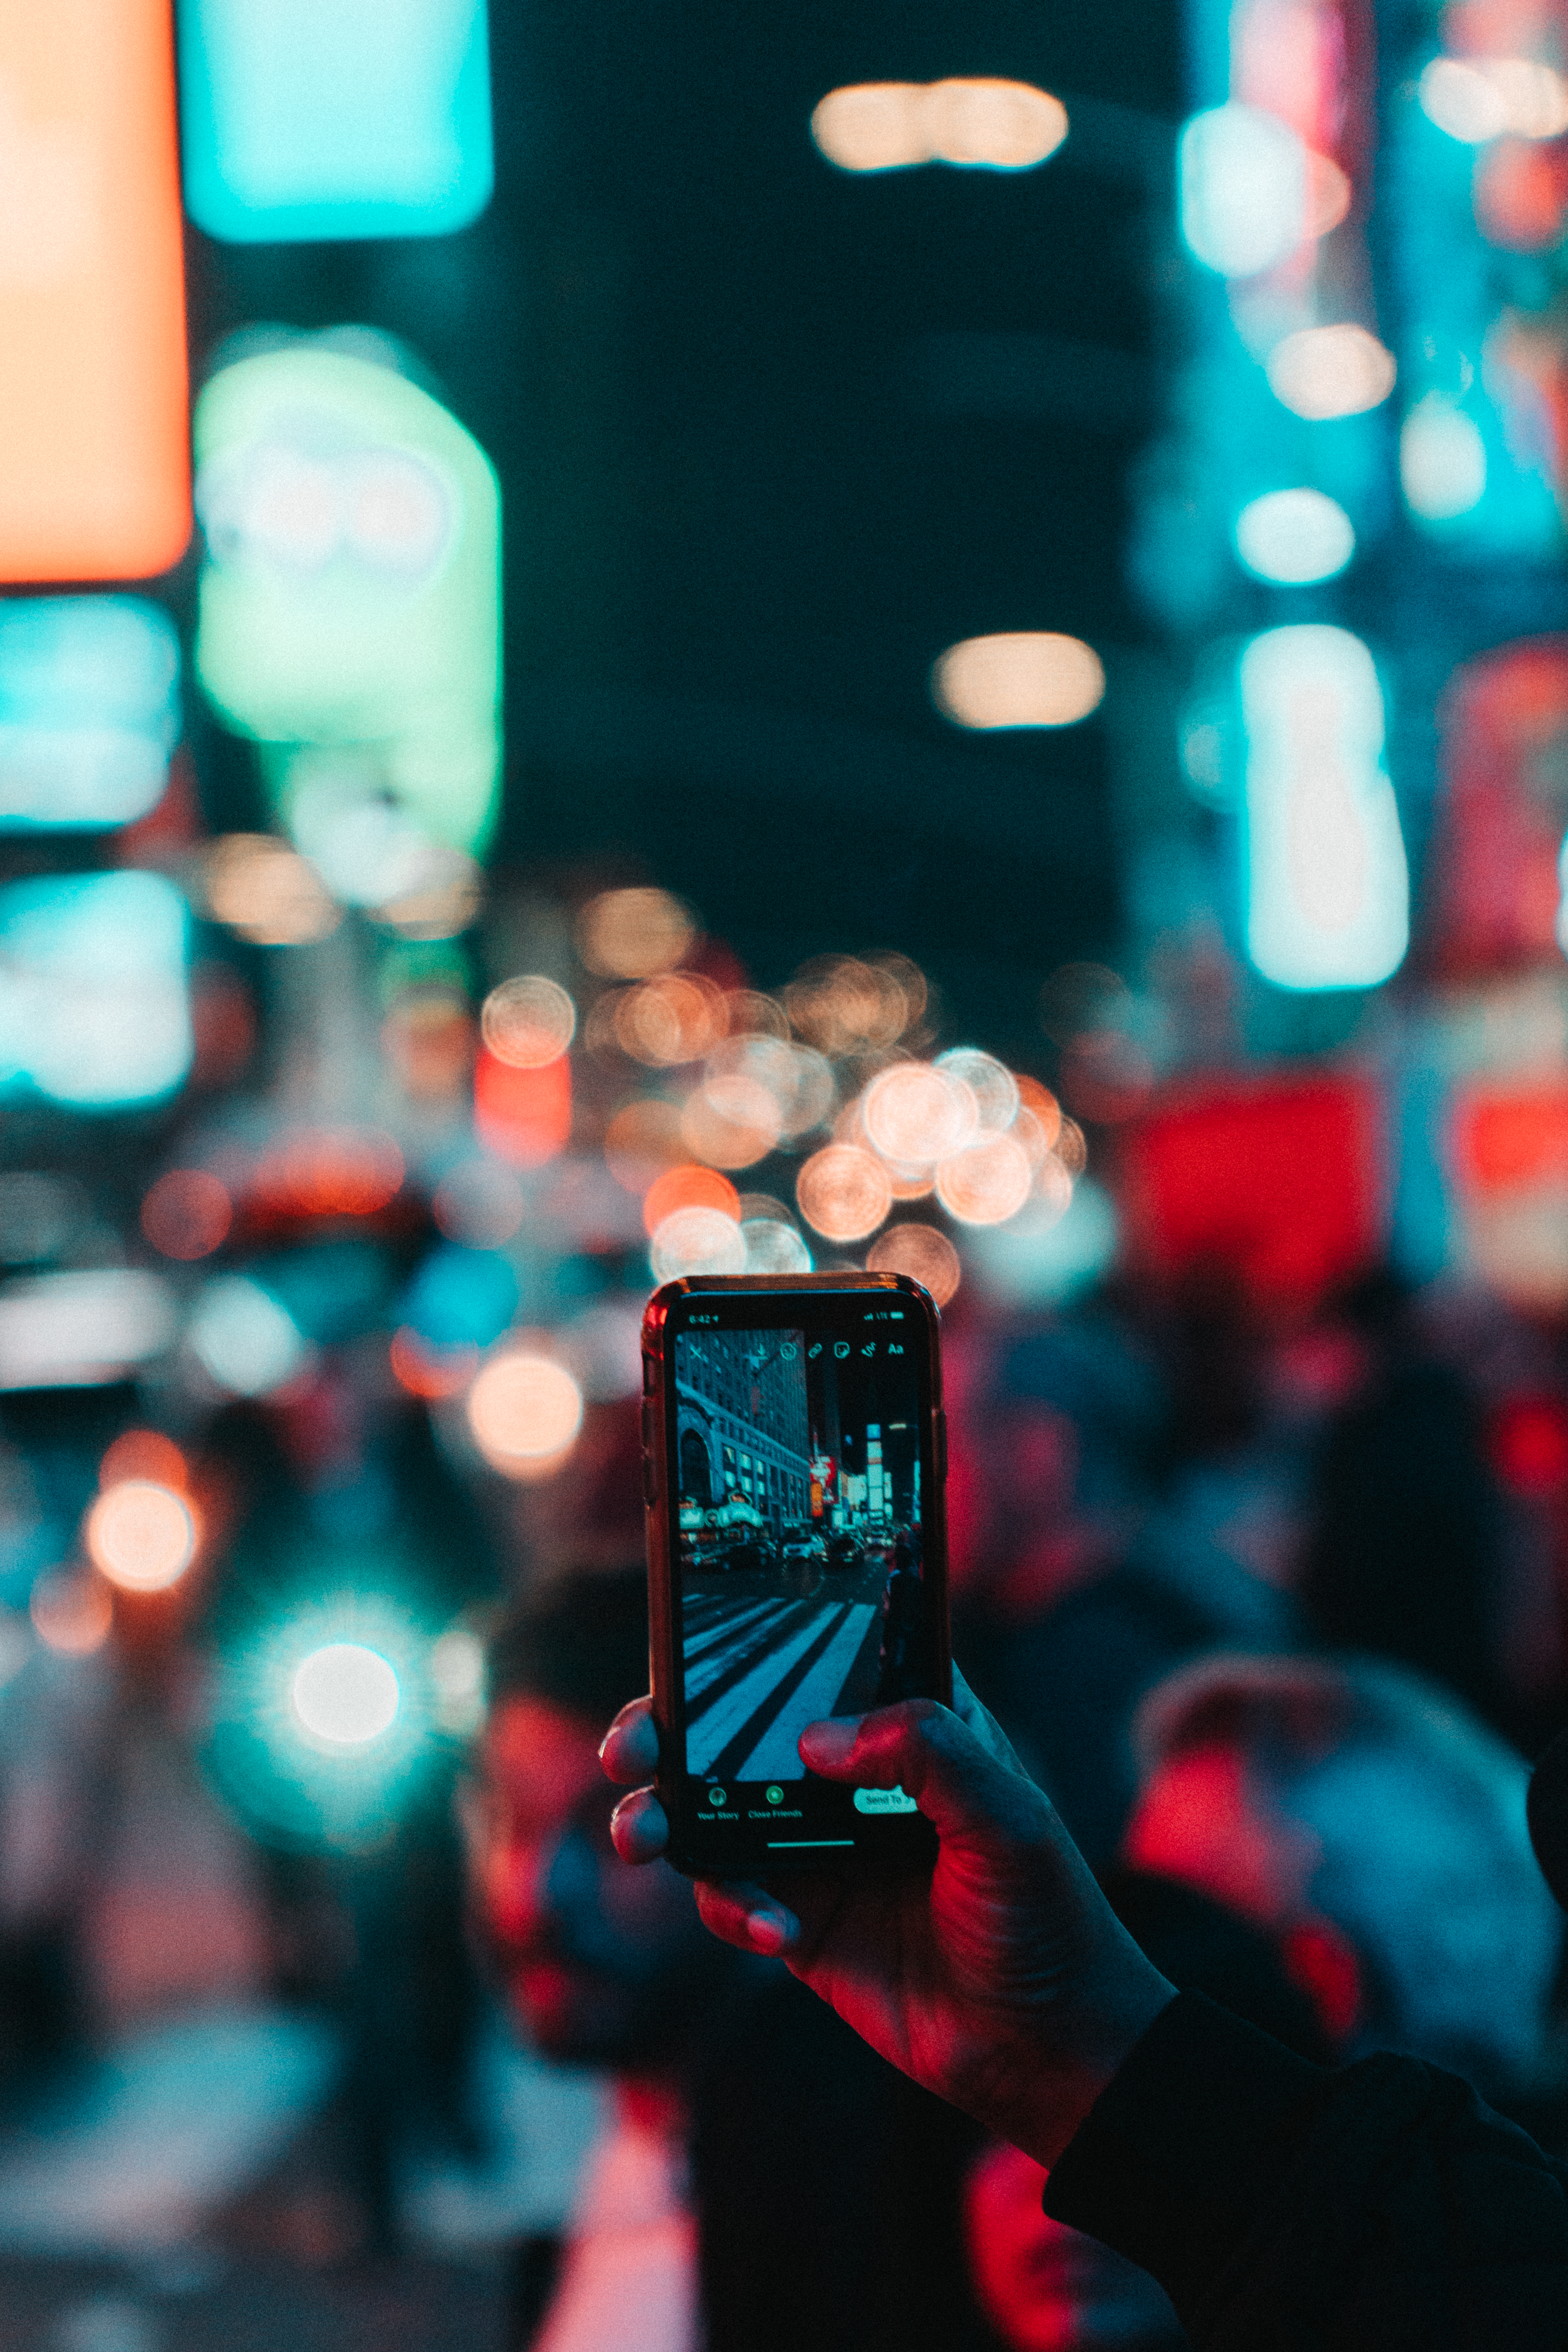 person taking photo of city during night time